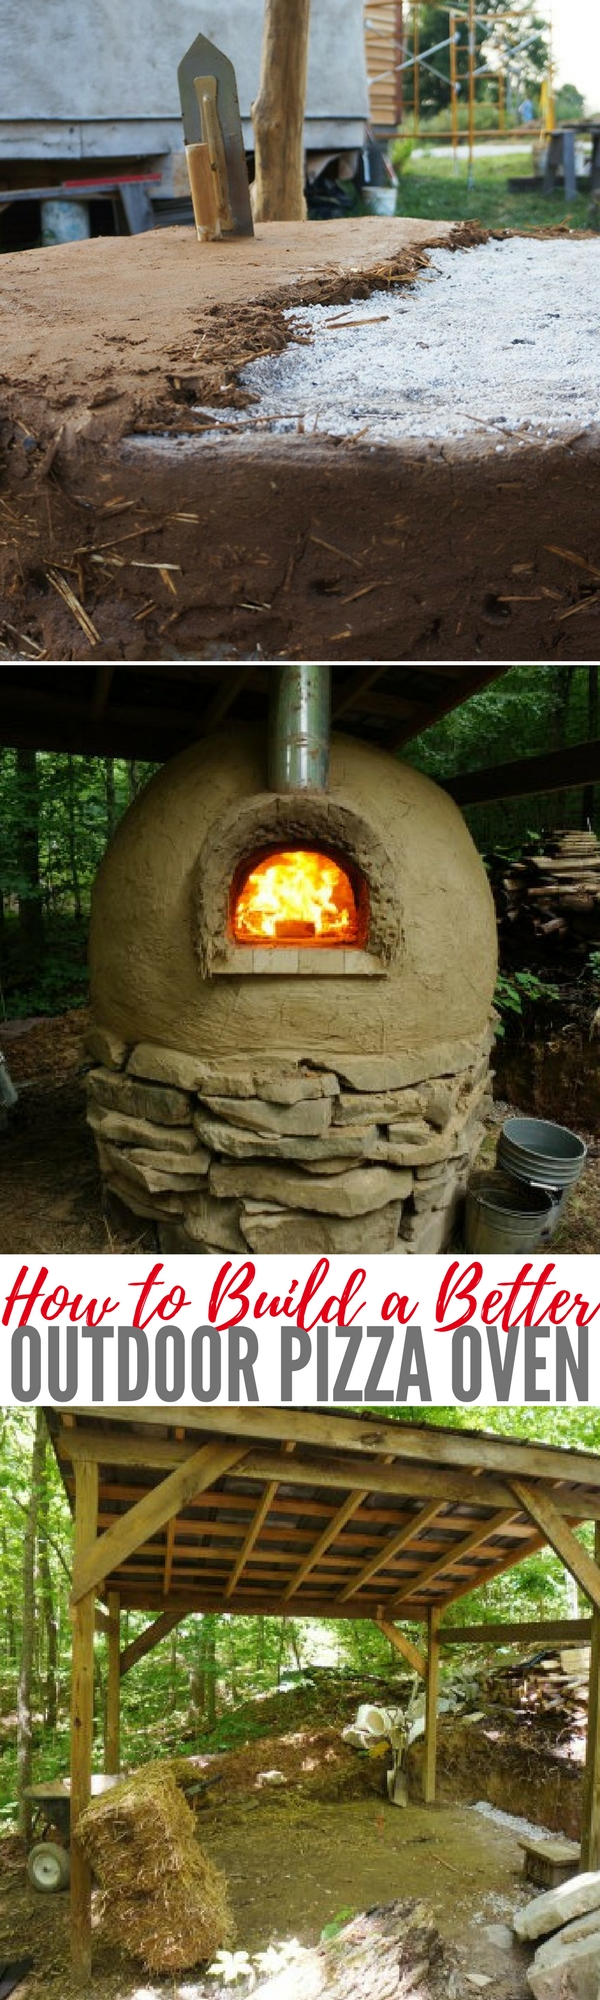 How to Build a Better Outdoor Pizza Oven